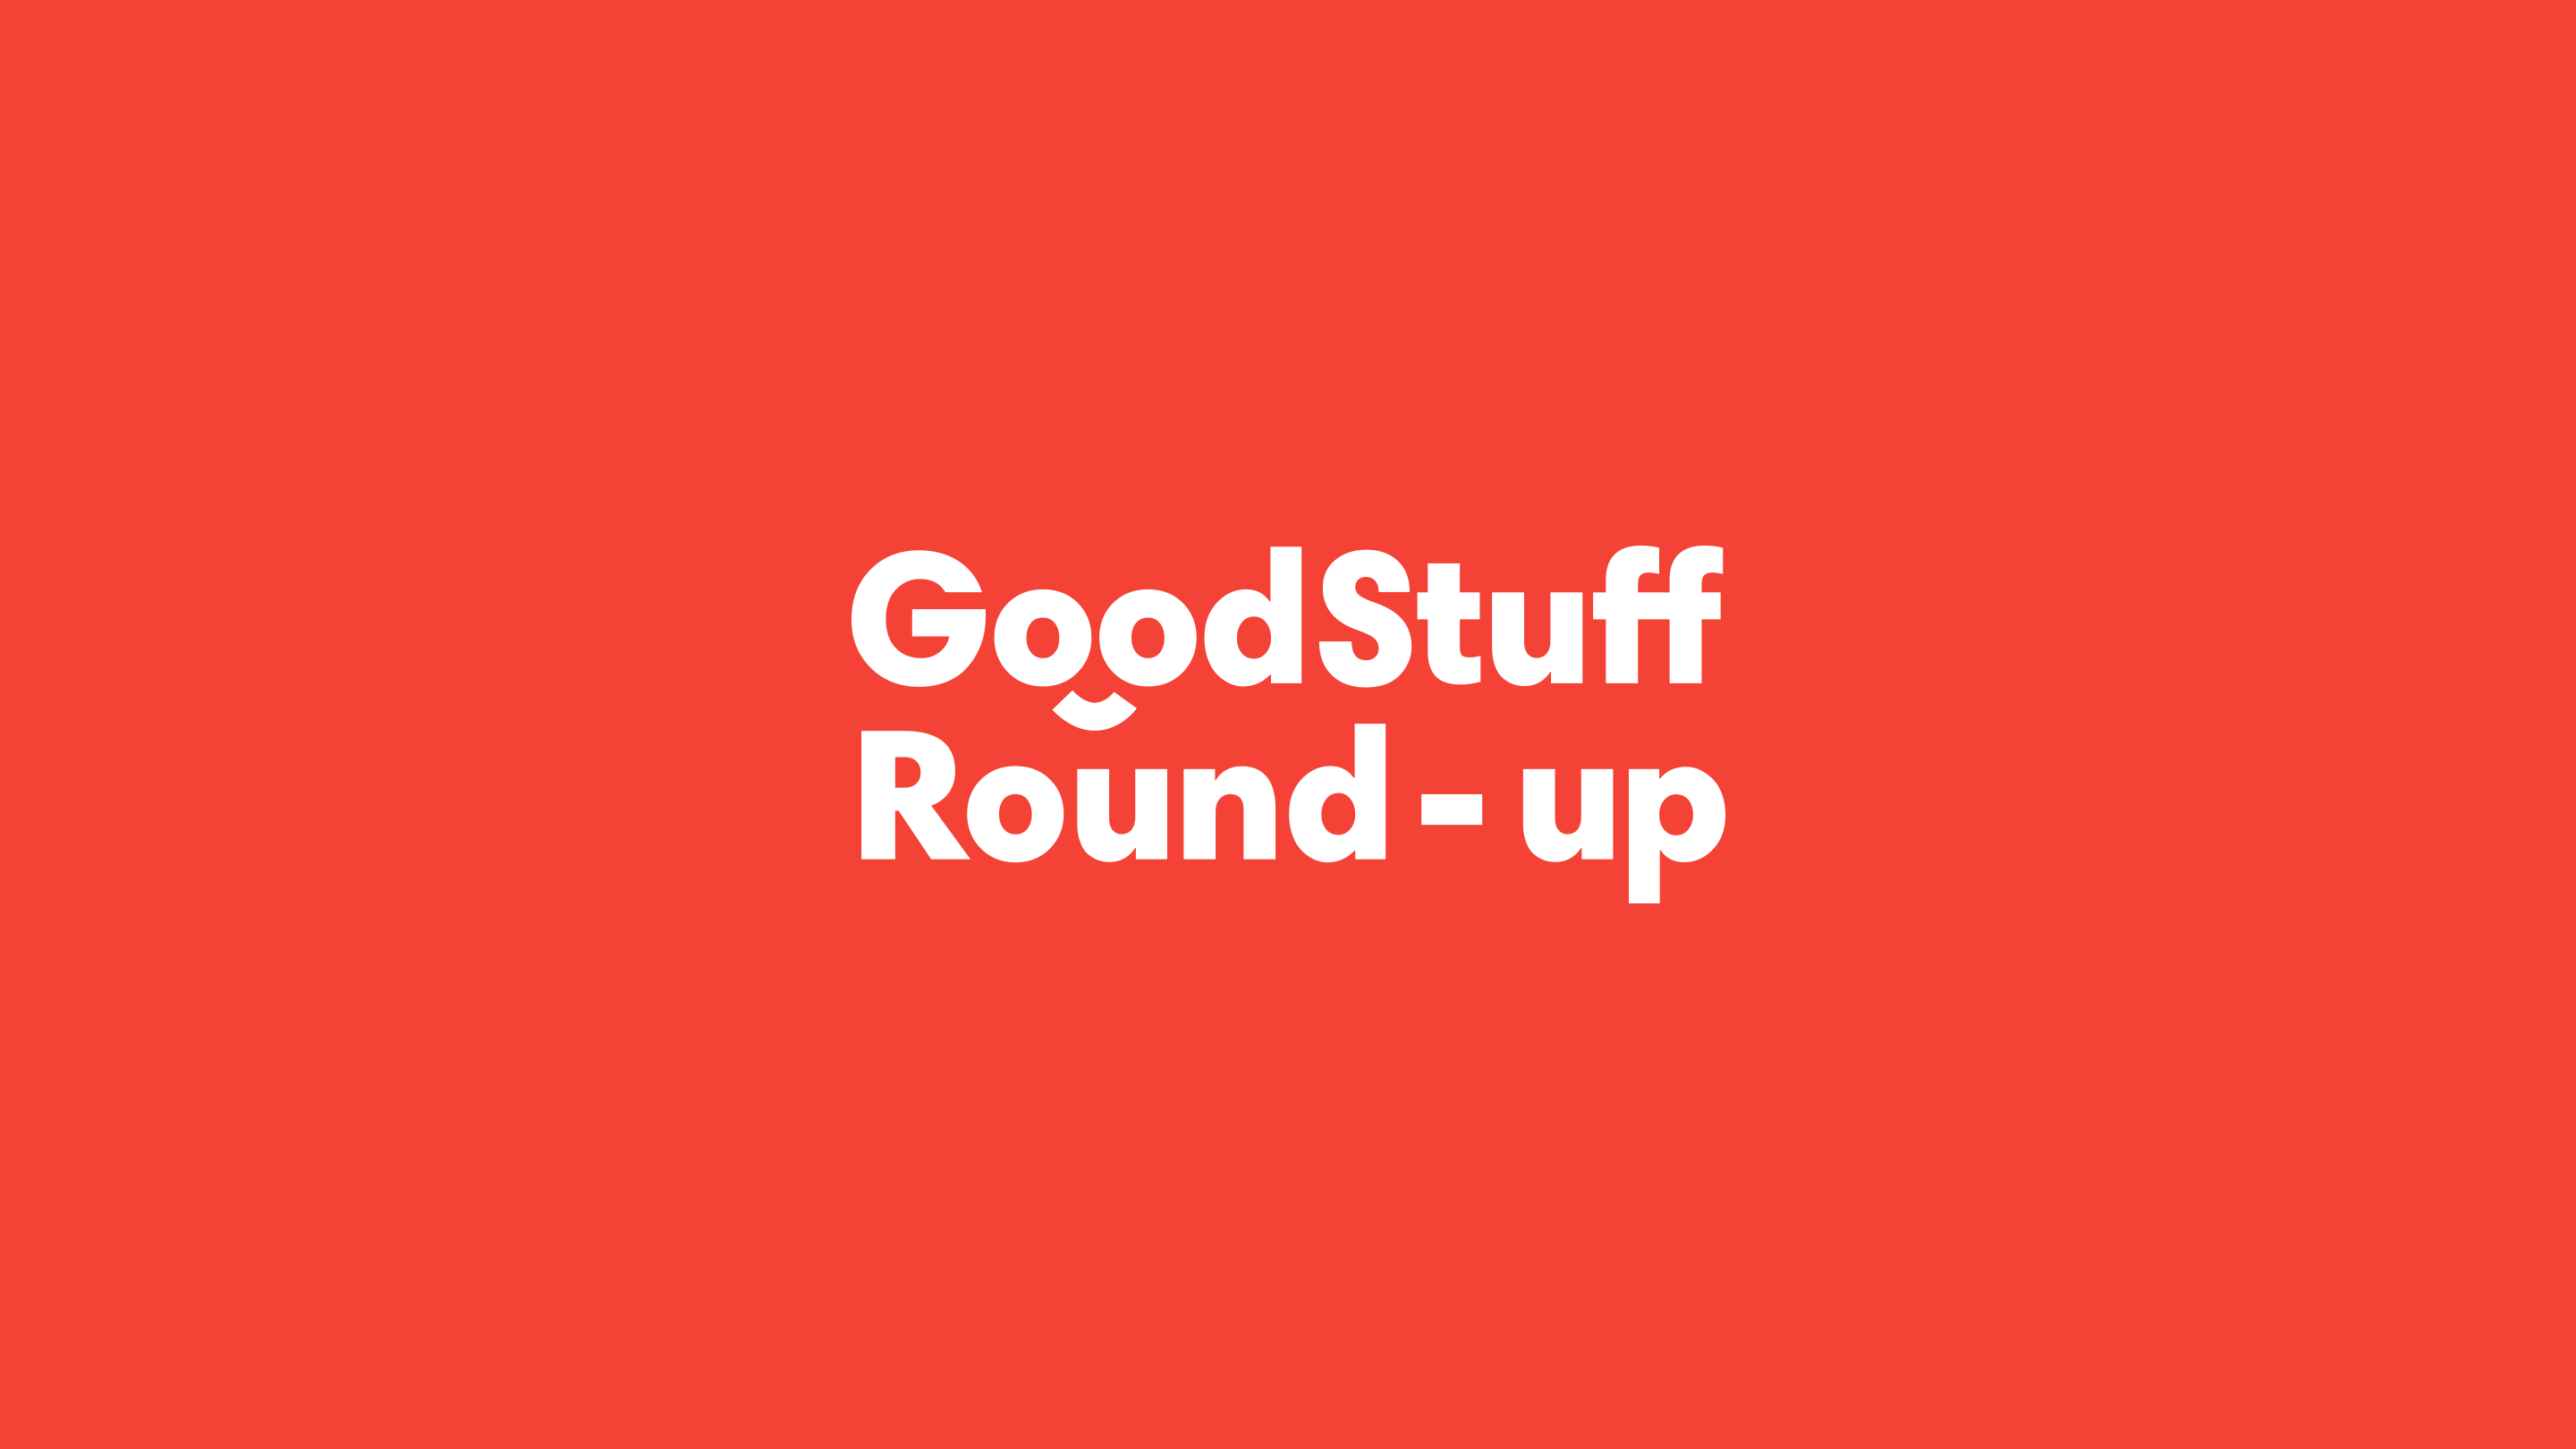 February round up good stuff